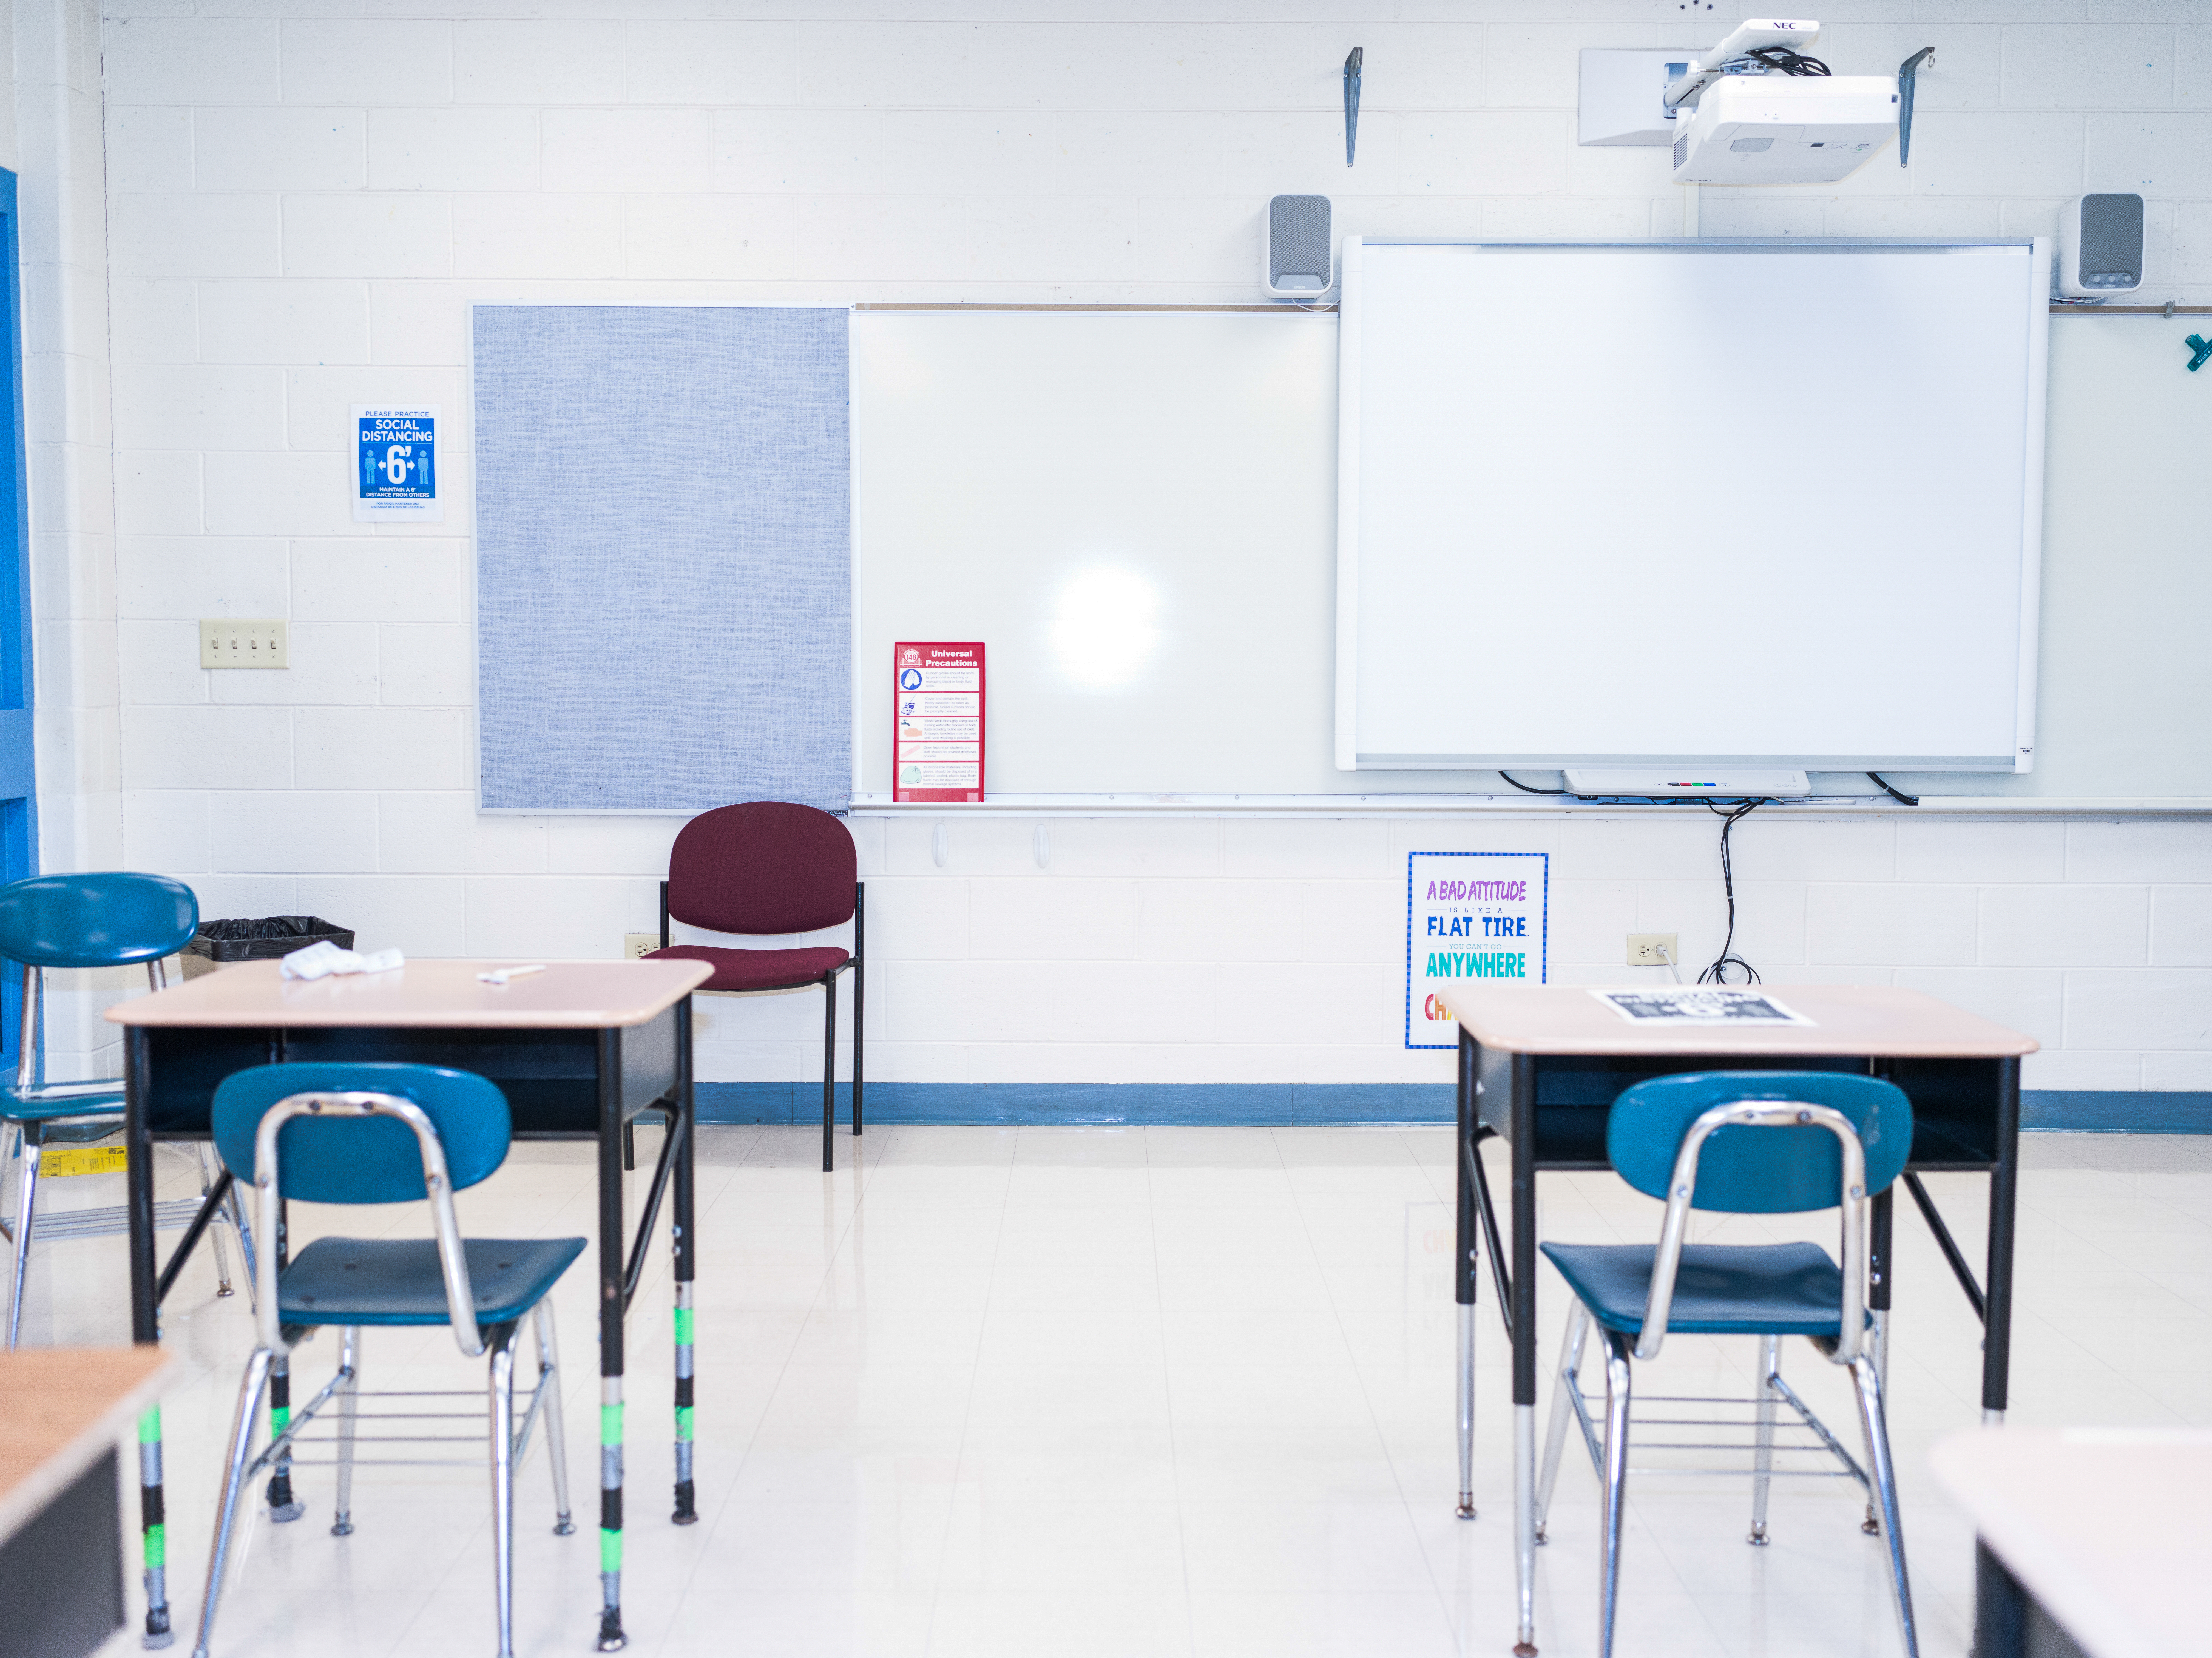 Empty desks and posters promoting social distancing at Lincoln Elementary in Dolton, Illinois, on Feb. 28, 2021.